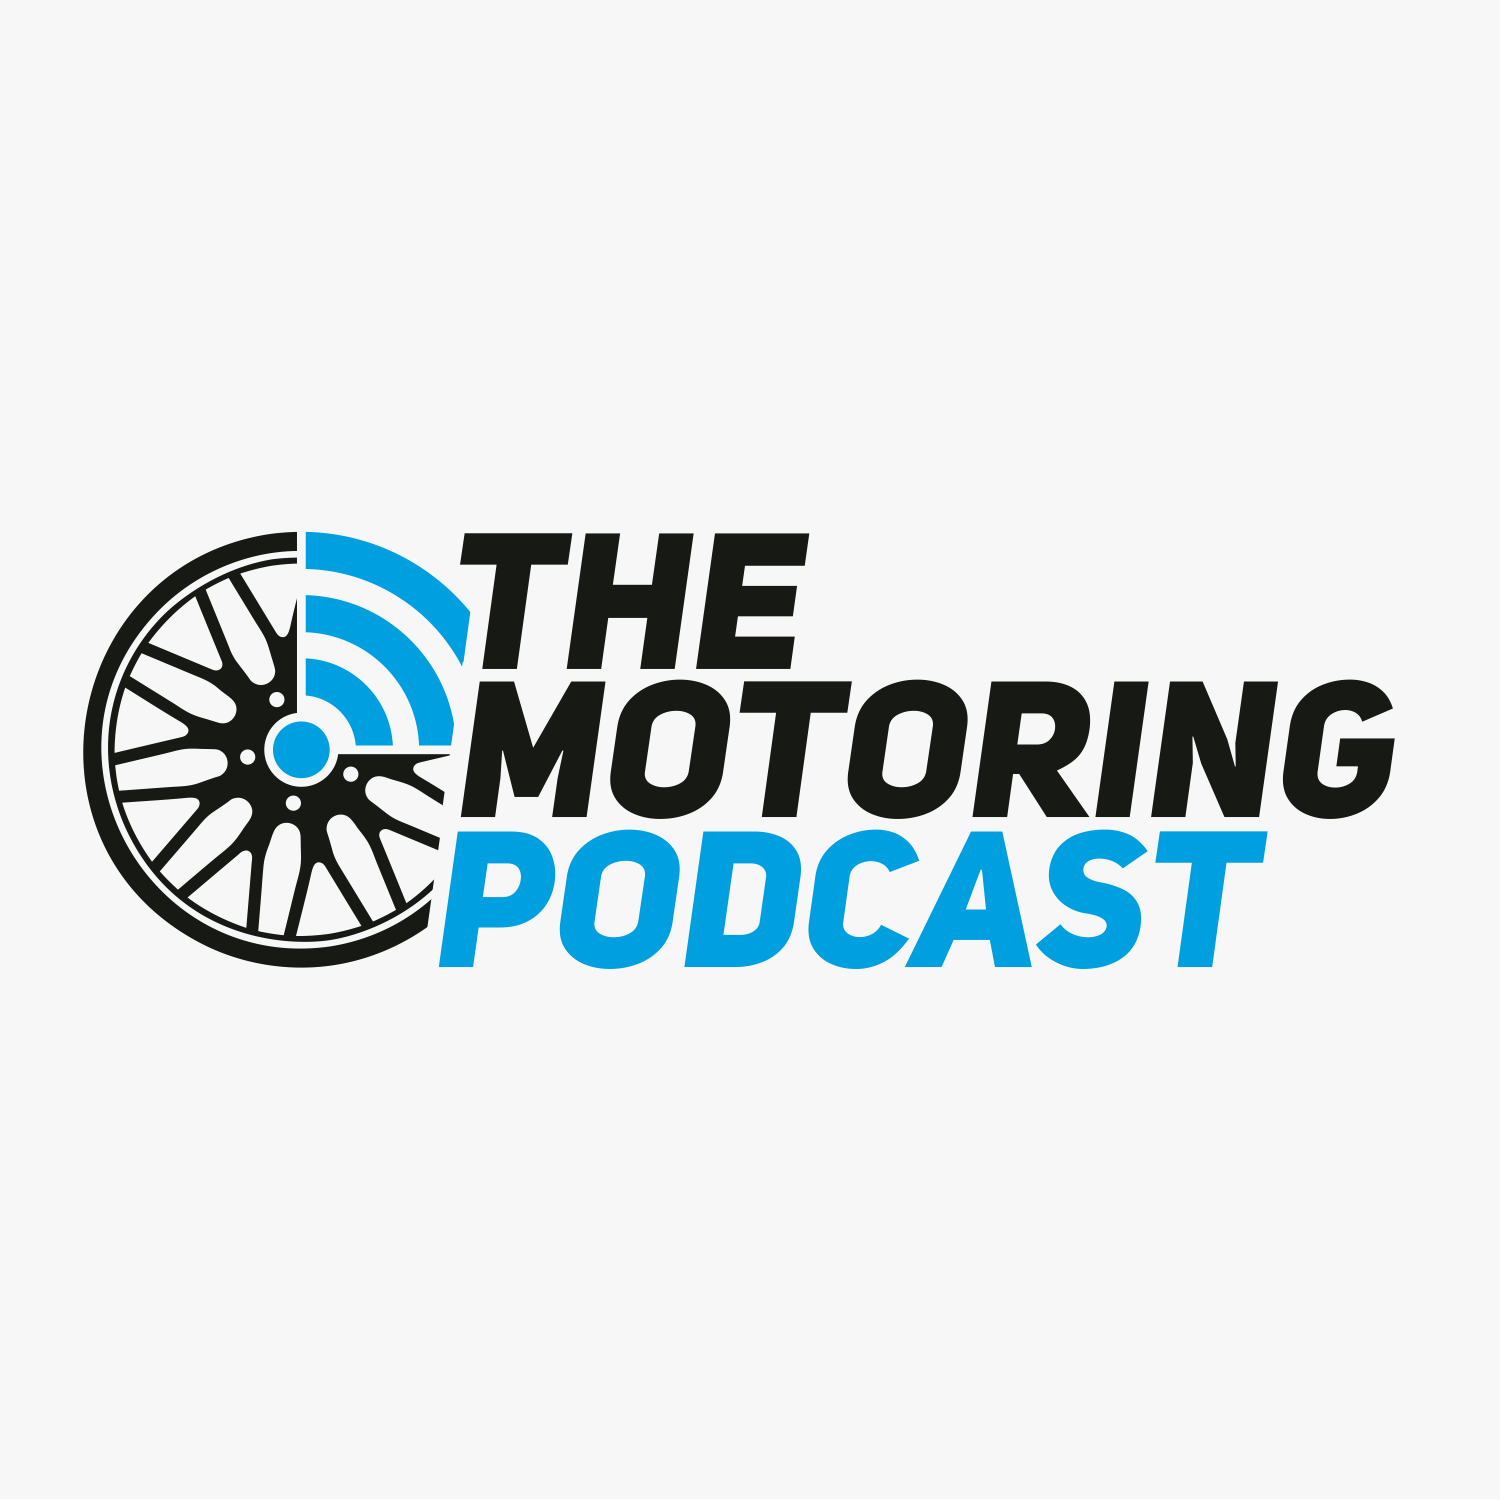 Motoring Podcast - Episodes